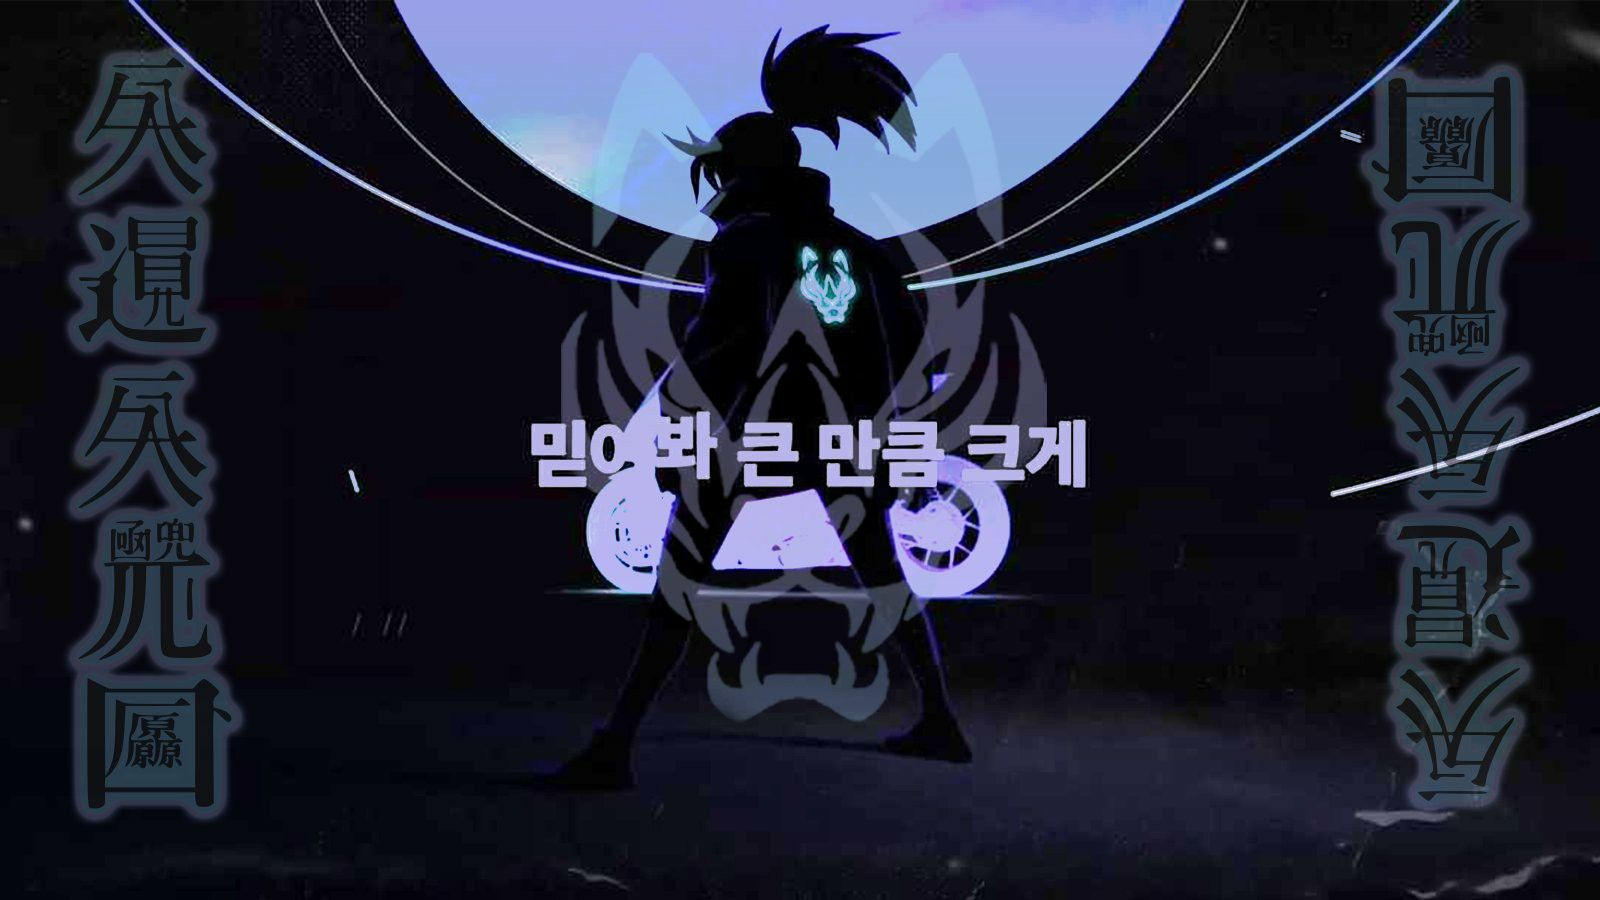 Pin By Storm On Kda Pop Stars In 2020 Anime Movies League Of Legends Anime